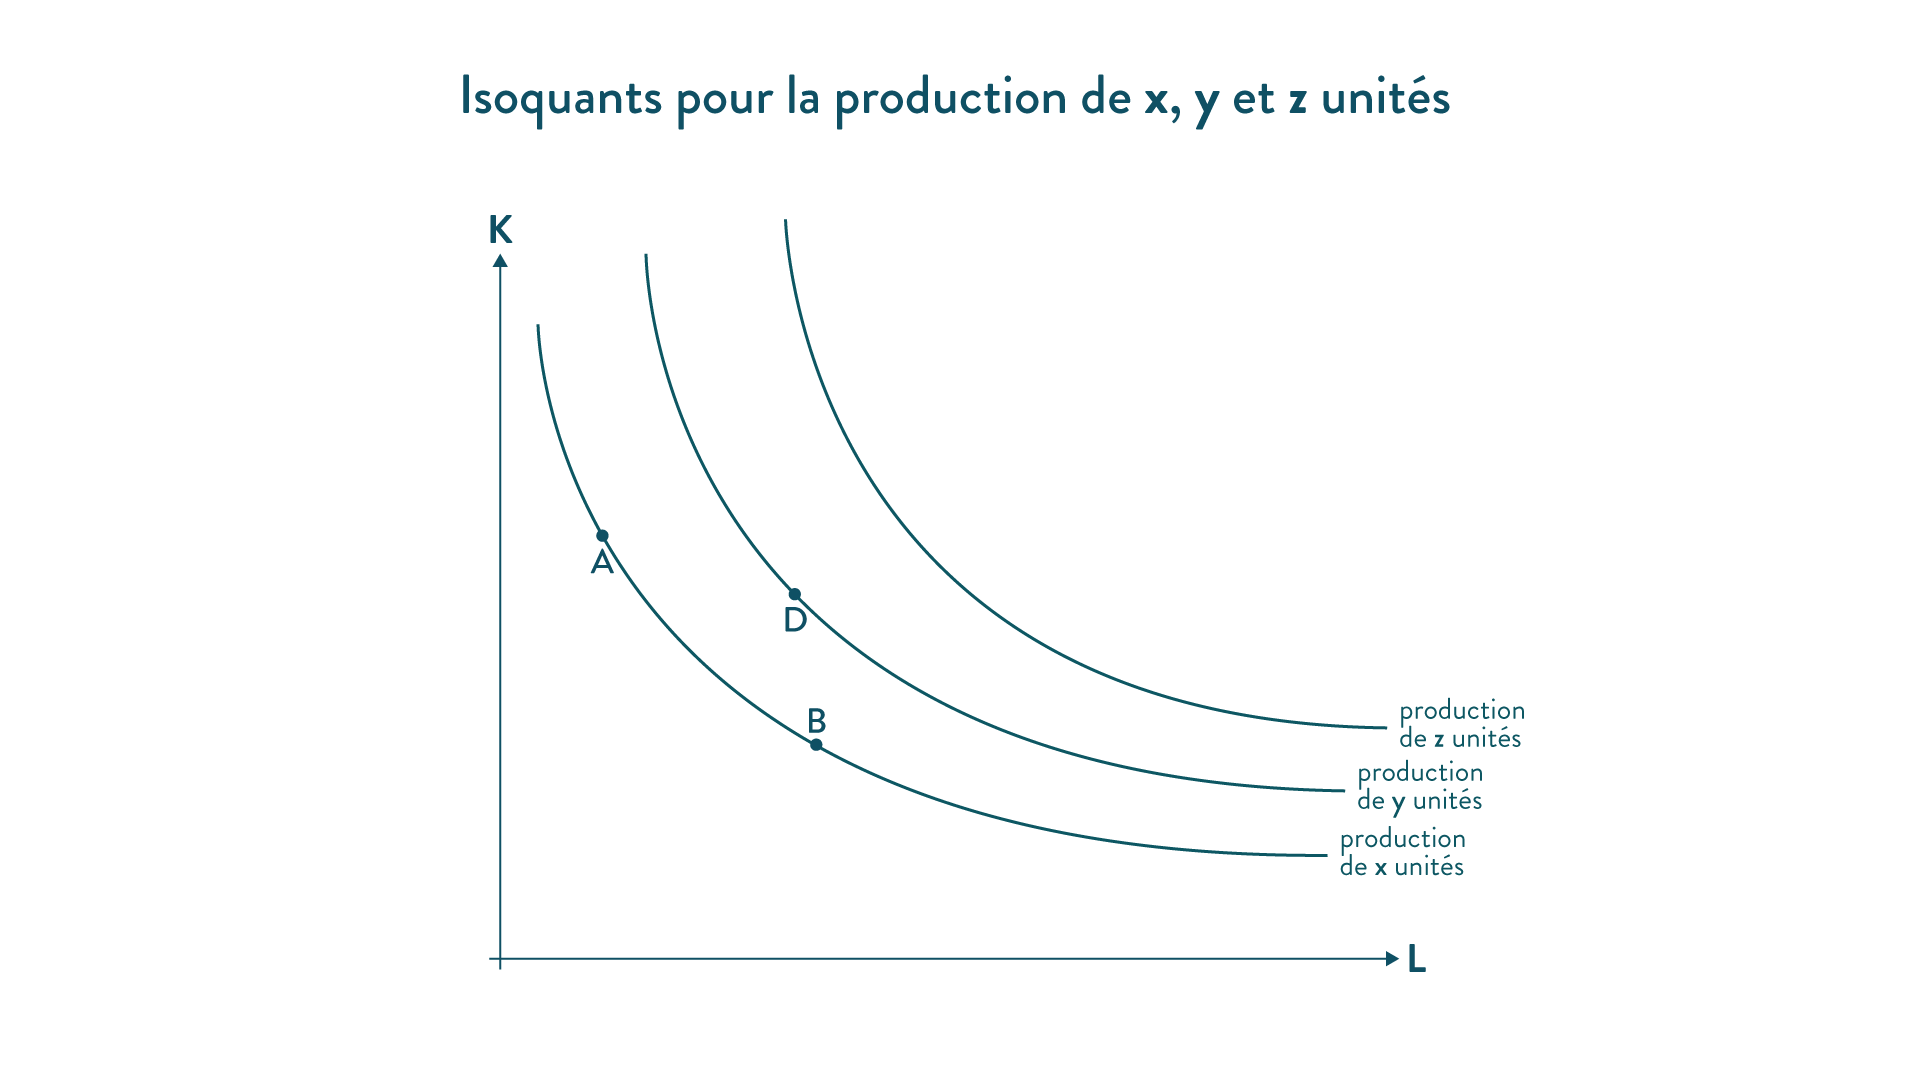 Isoquants fonction de production méthode ses